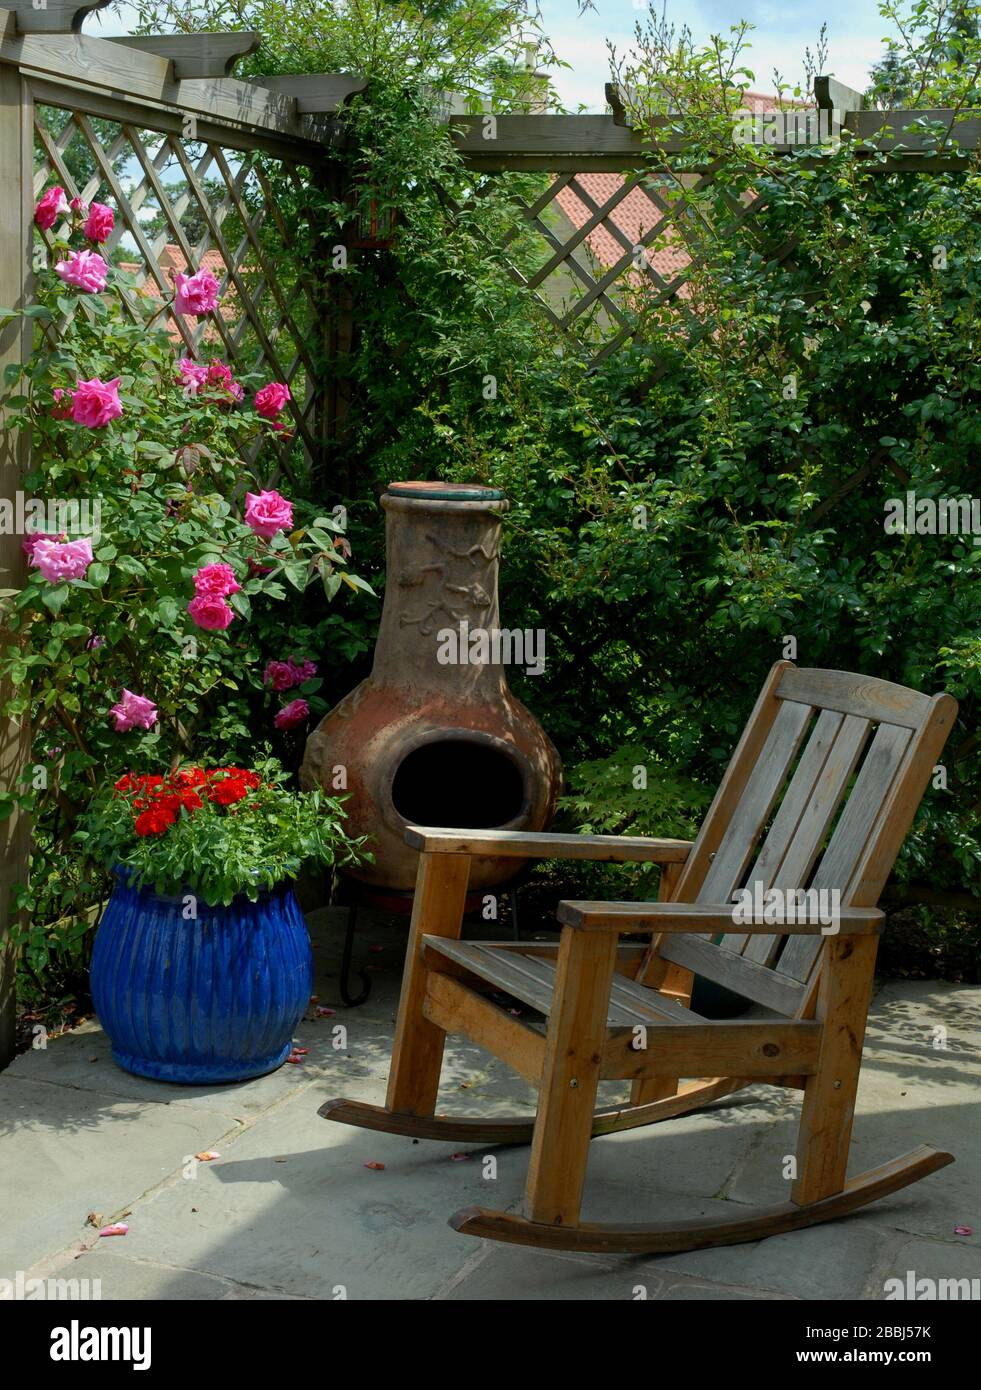 https www alamy com patio corner with wooden rocker enclosed with a wooden pergola and trellis adorned with roses including the thornless pink rose rosa zephirin droui image351367847 html